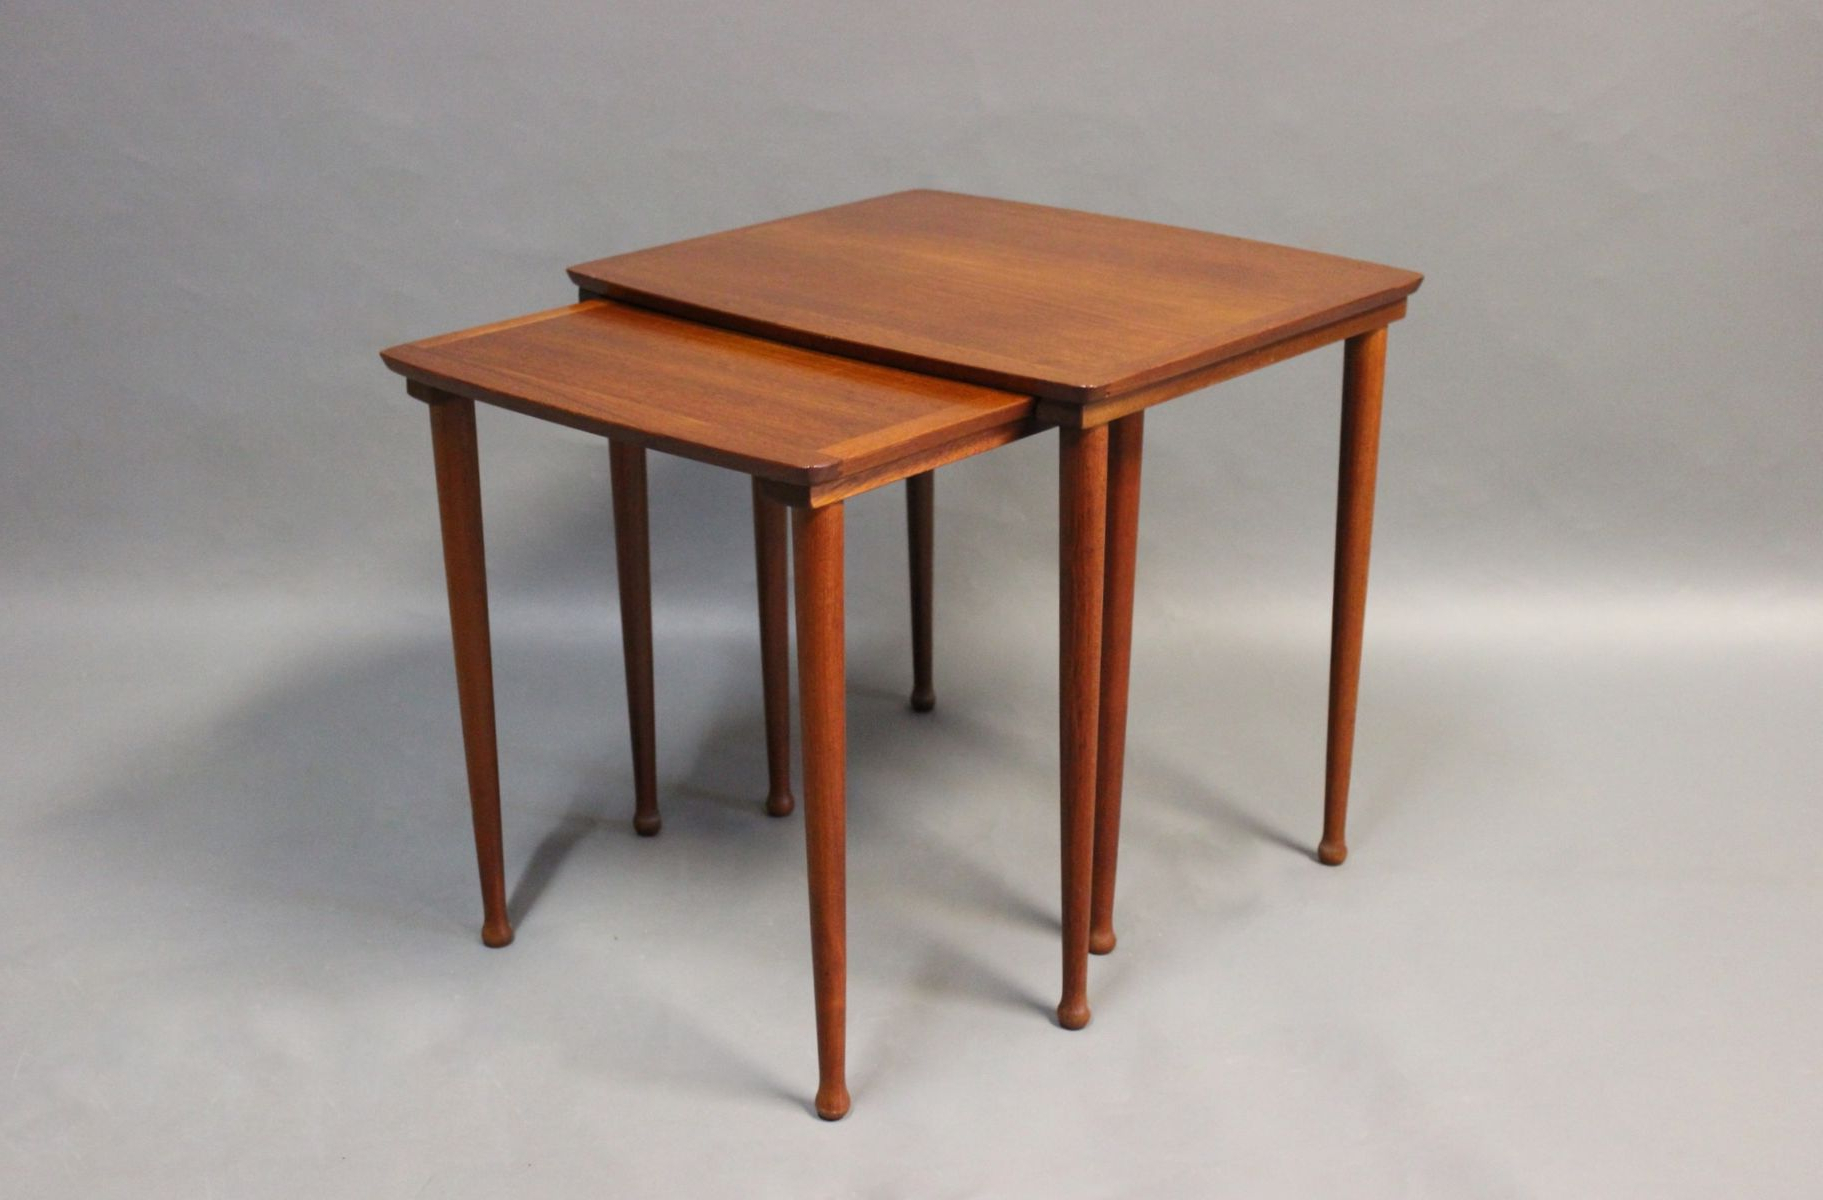 Teak Nesting Tables From Møbelintarsia, 1960S For Sale At Pamono Pertaining To Current Intarsia Console Tables (View 18 of 20)